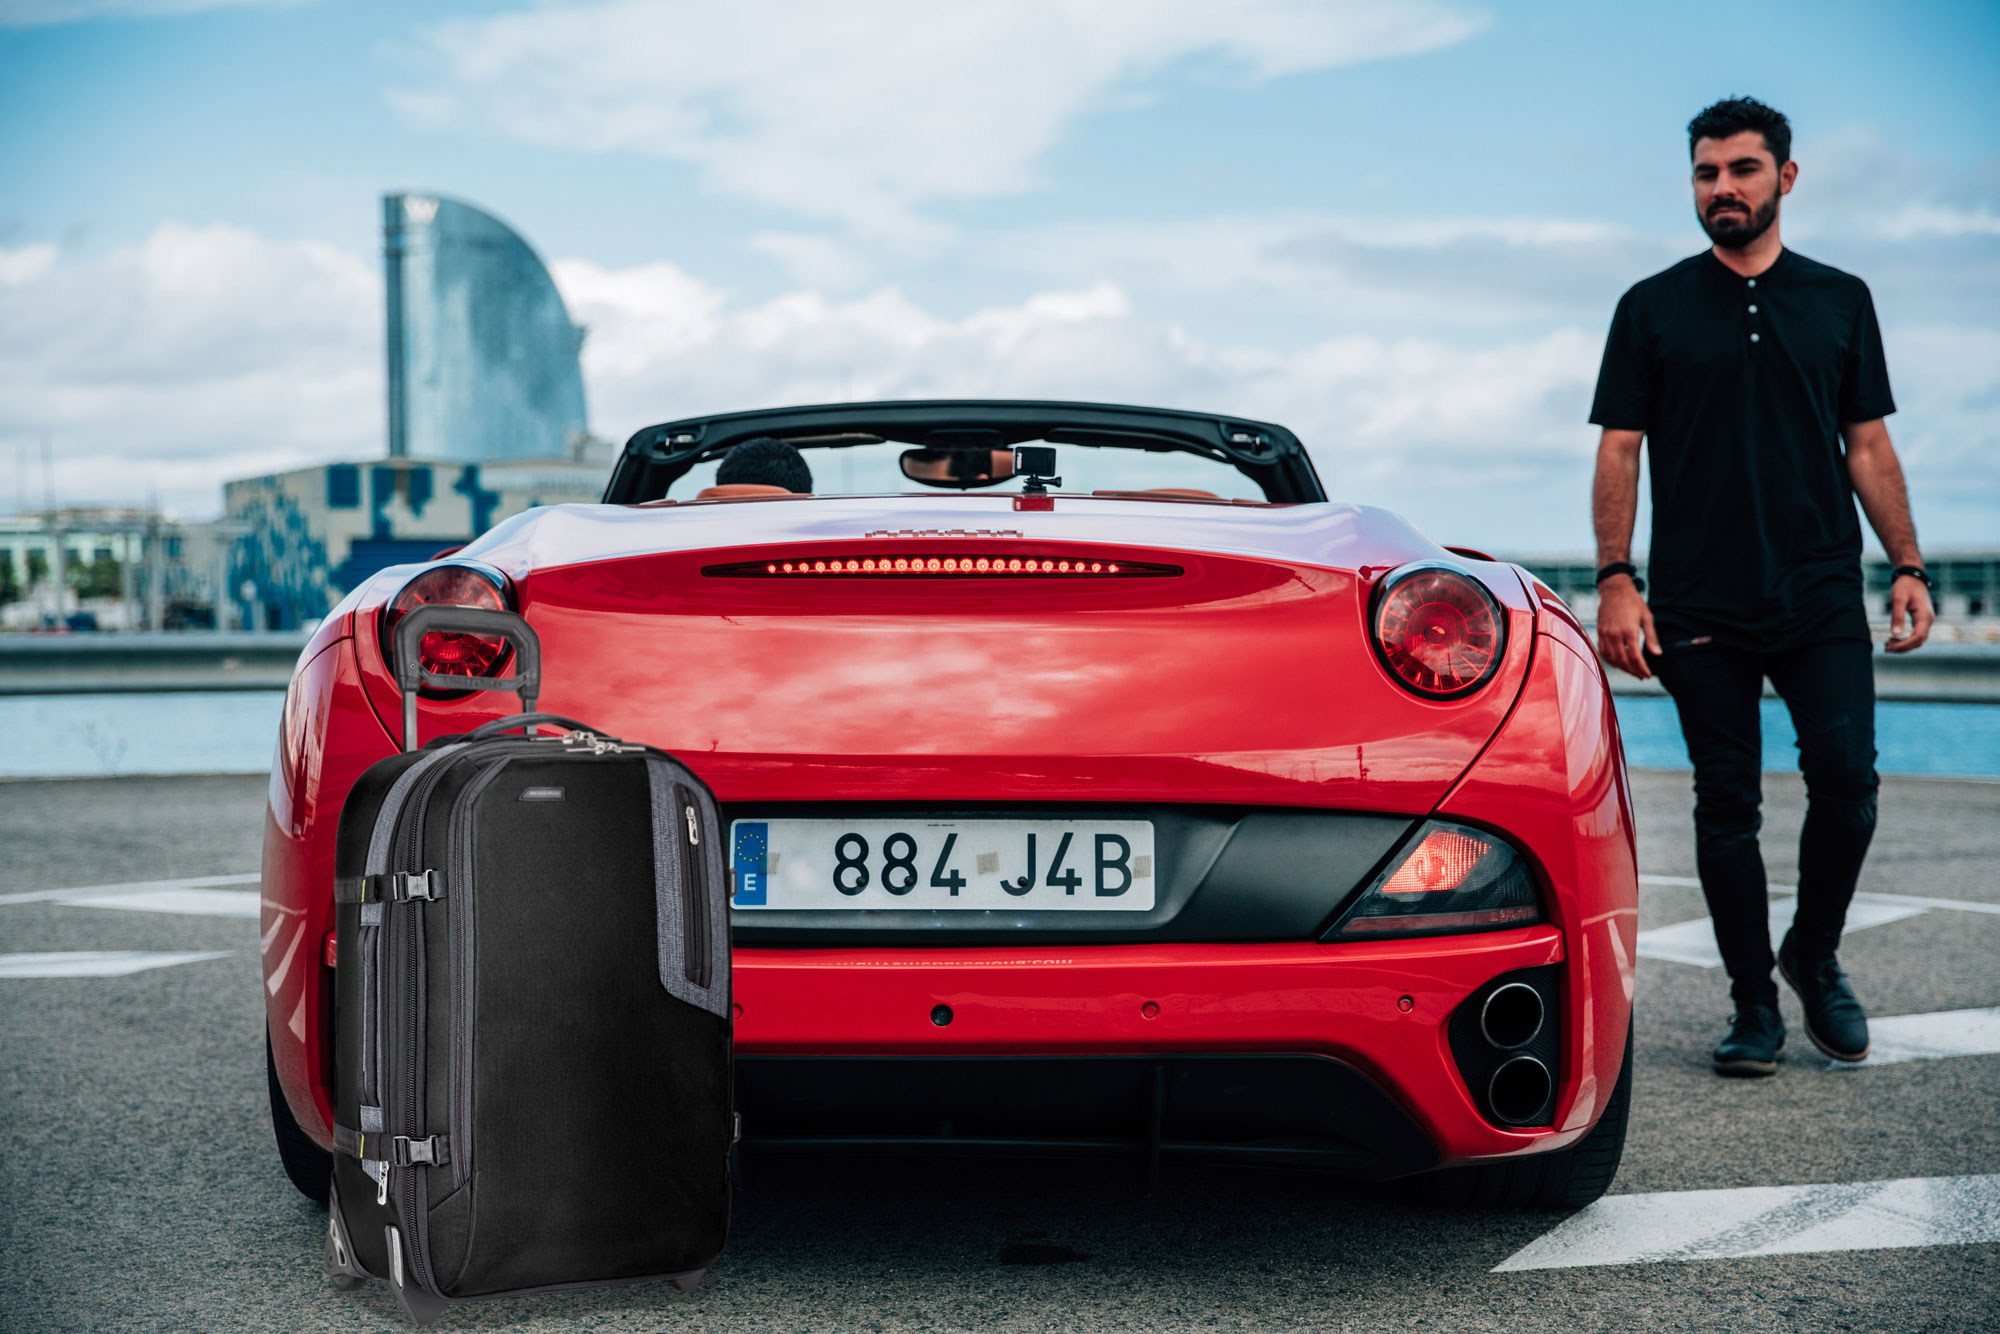 man-beside-euro-sports-car_briggs_riley_brx_luggage.jpg